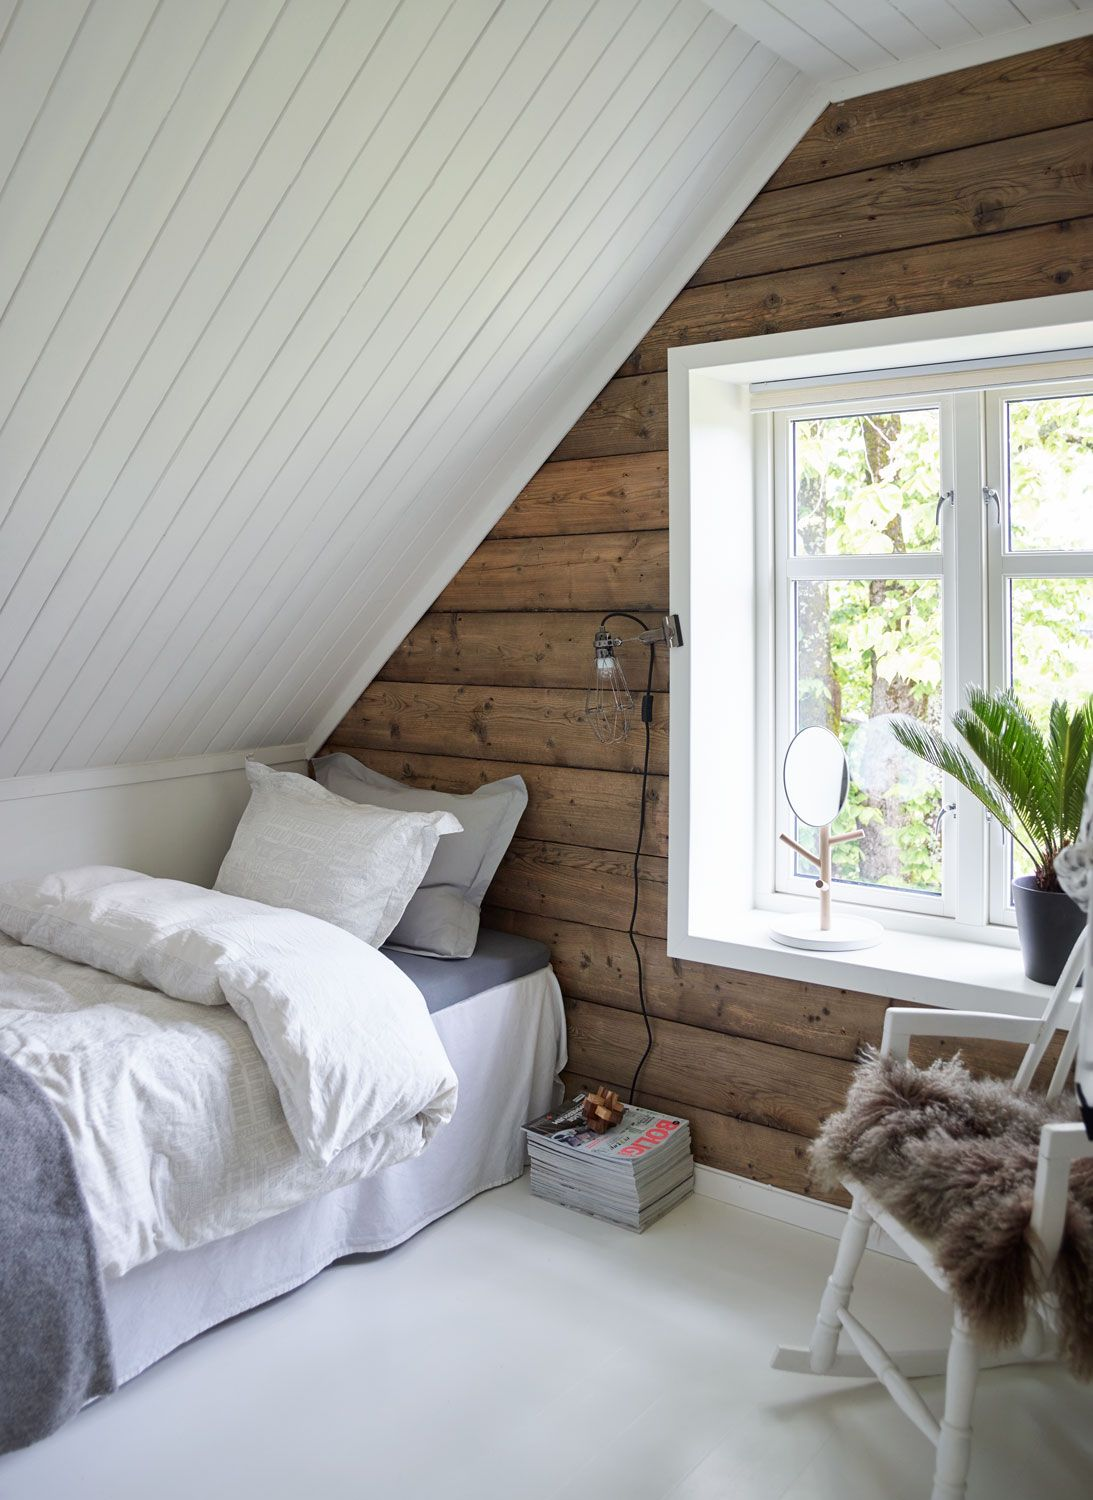 Attic bedroom design and d cor tips small attic bedrooms for Attic bedroom ideas